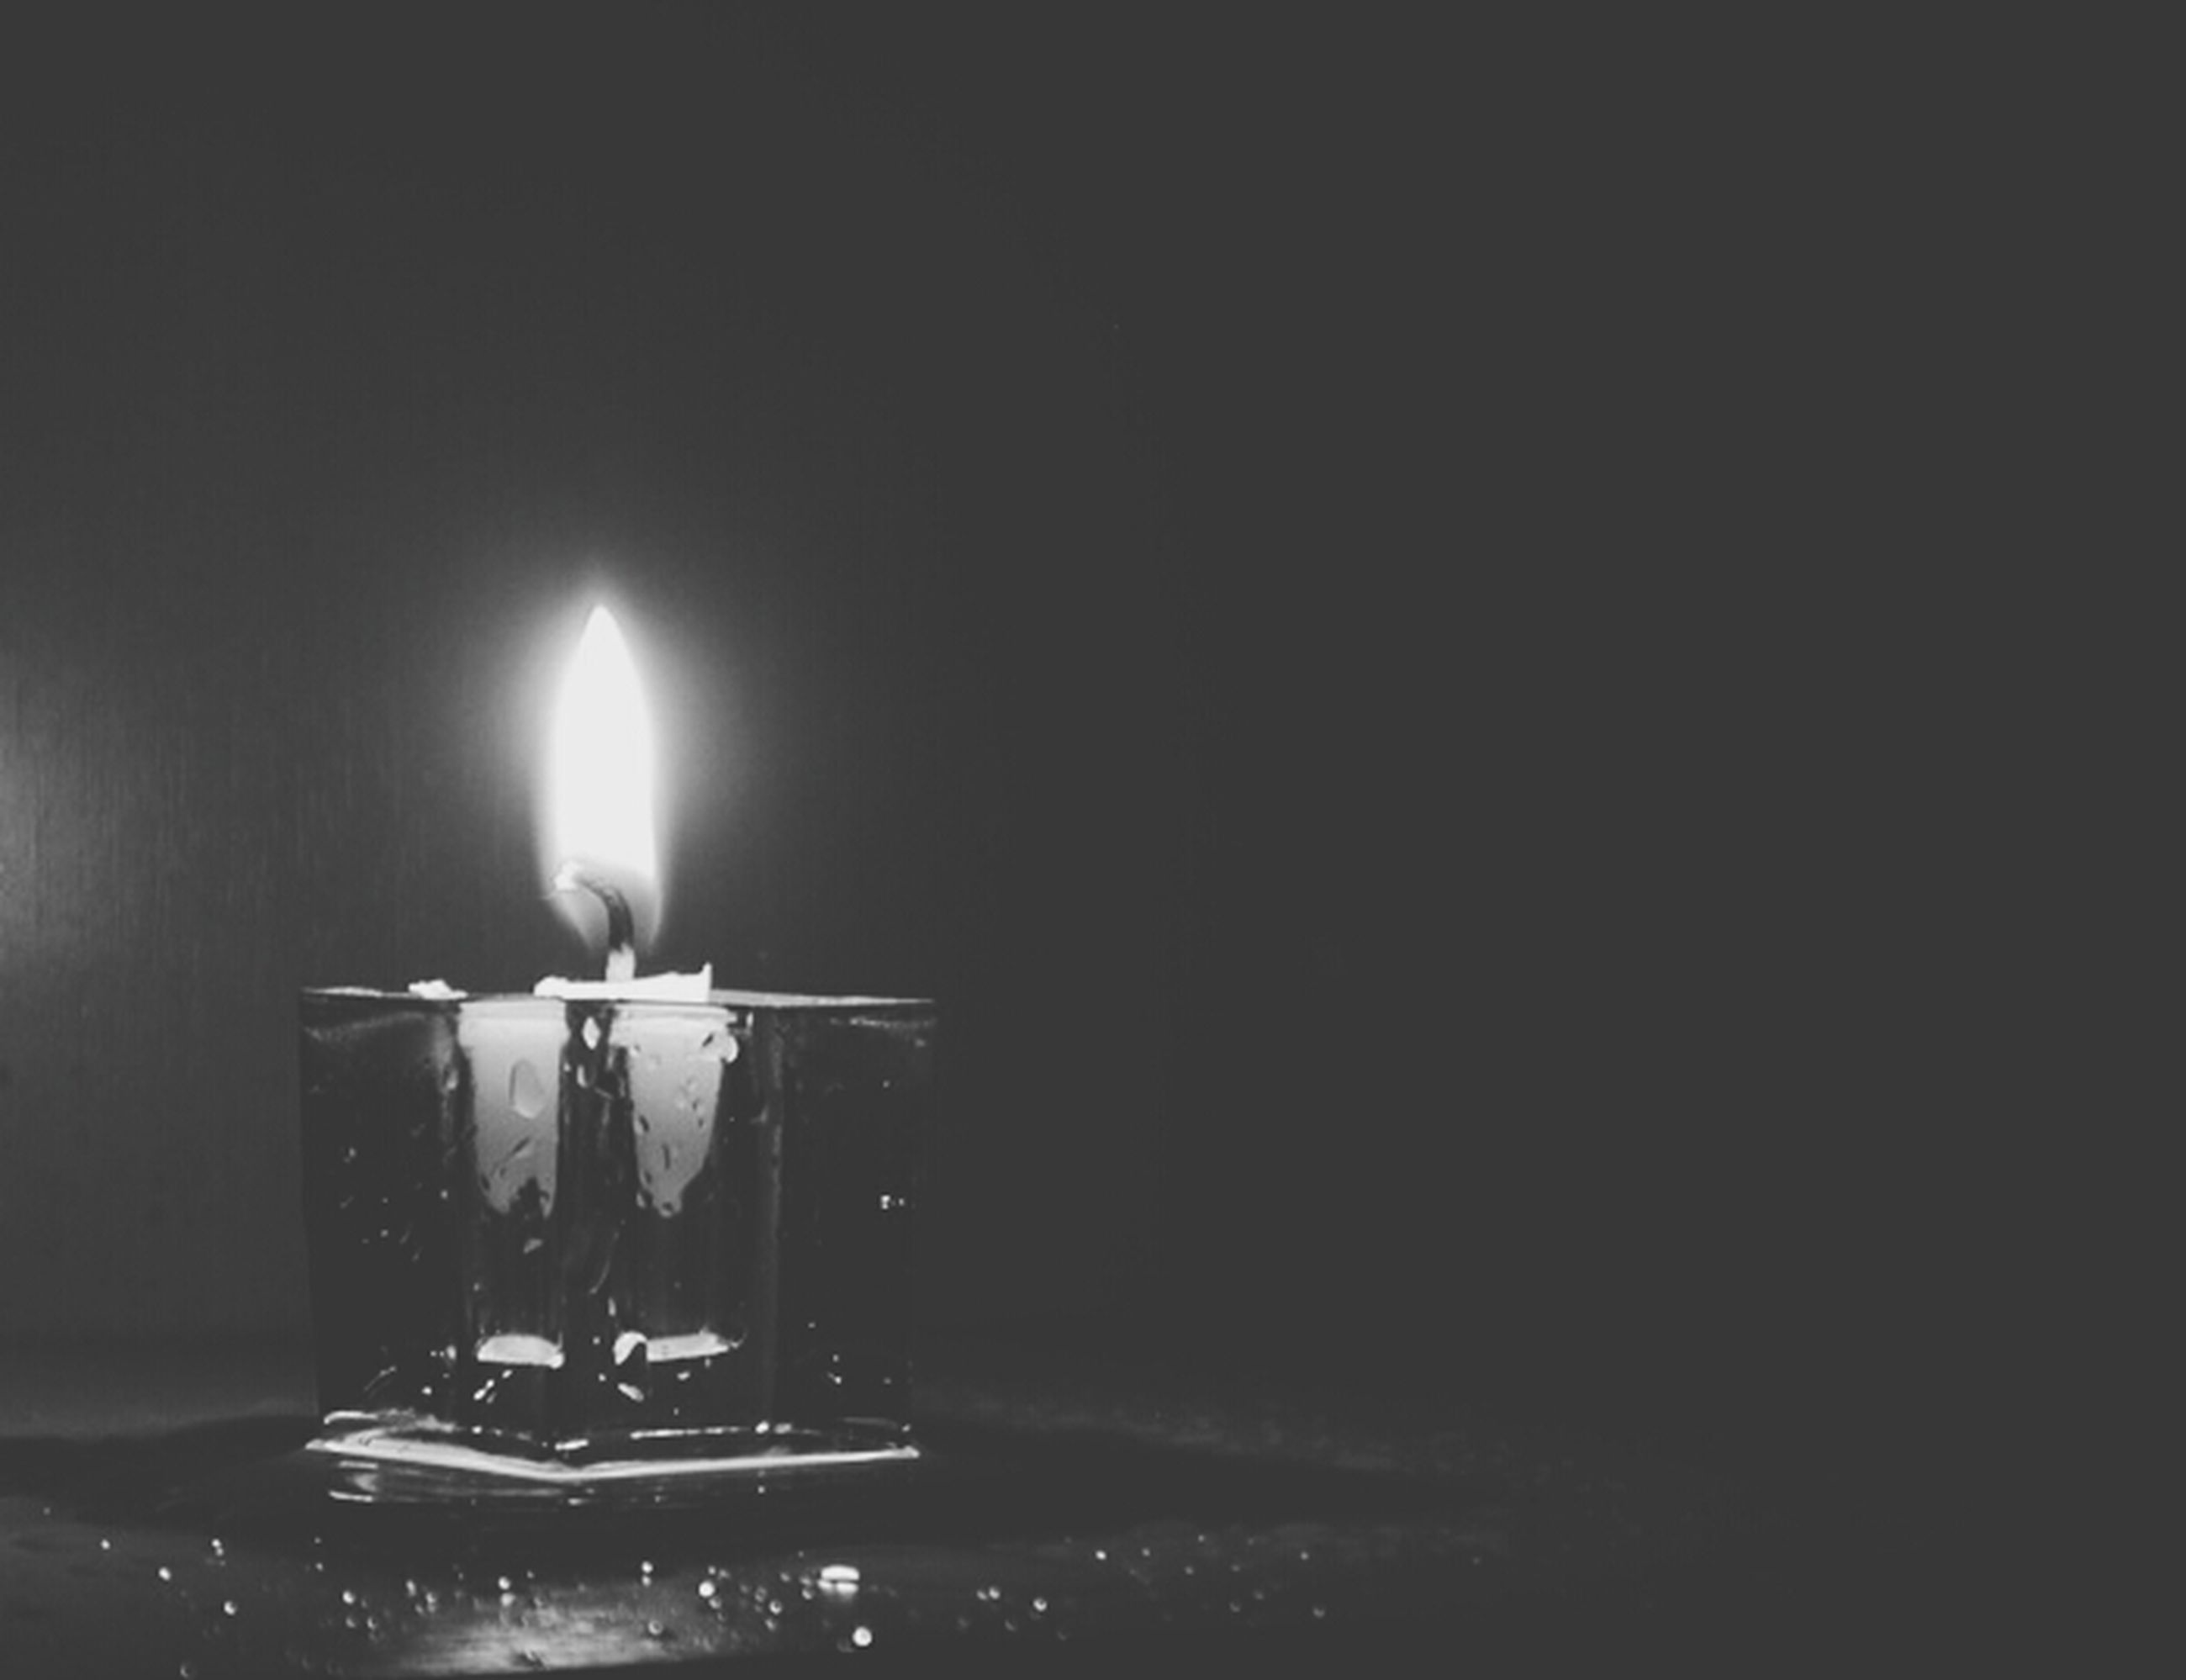 illuminated, burning, night, flame, glowing, lighting equipment, candle, lit, dark, indoors, fire - natural phenomenon, heat - temperature, copy space, darkroom, light - natural phenomenon, close-up, electricity, no people, wall - building feature, candlelight